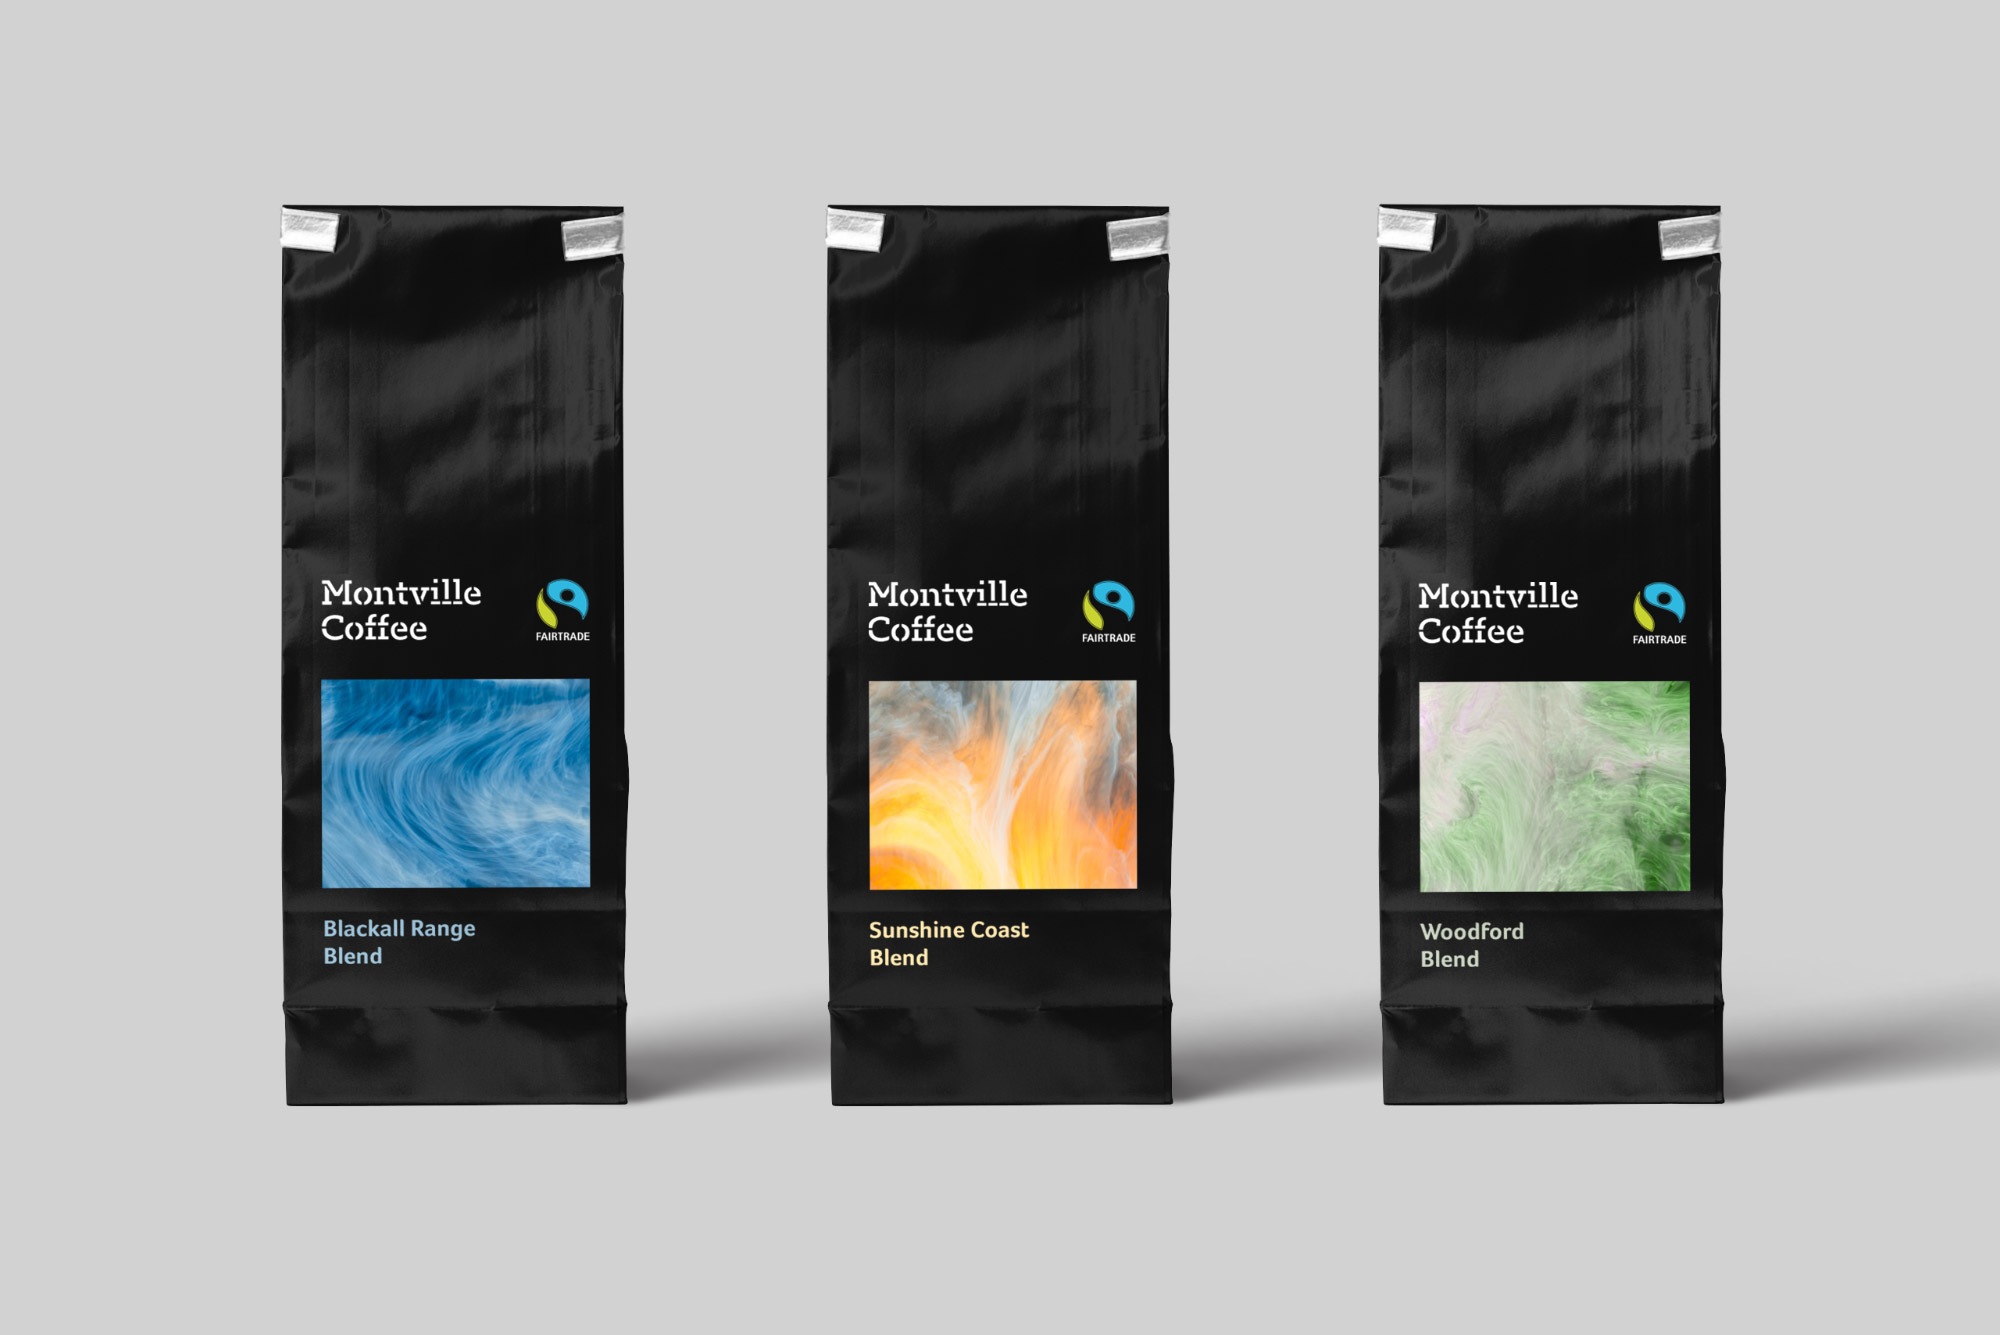 Montville Coffee packaging